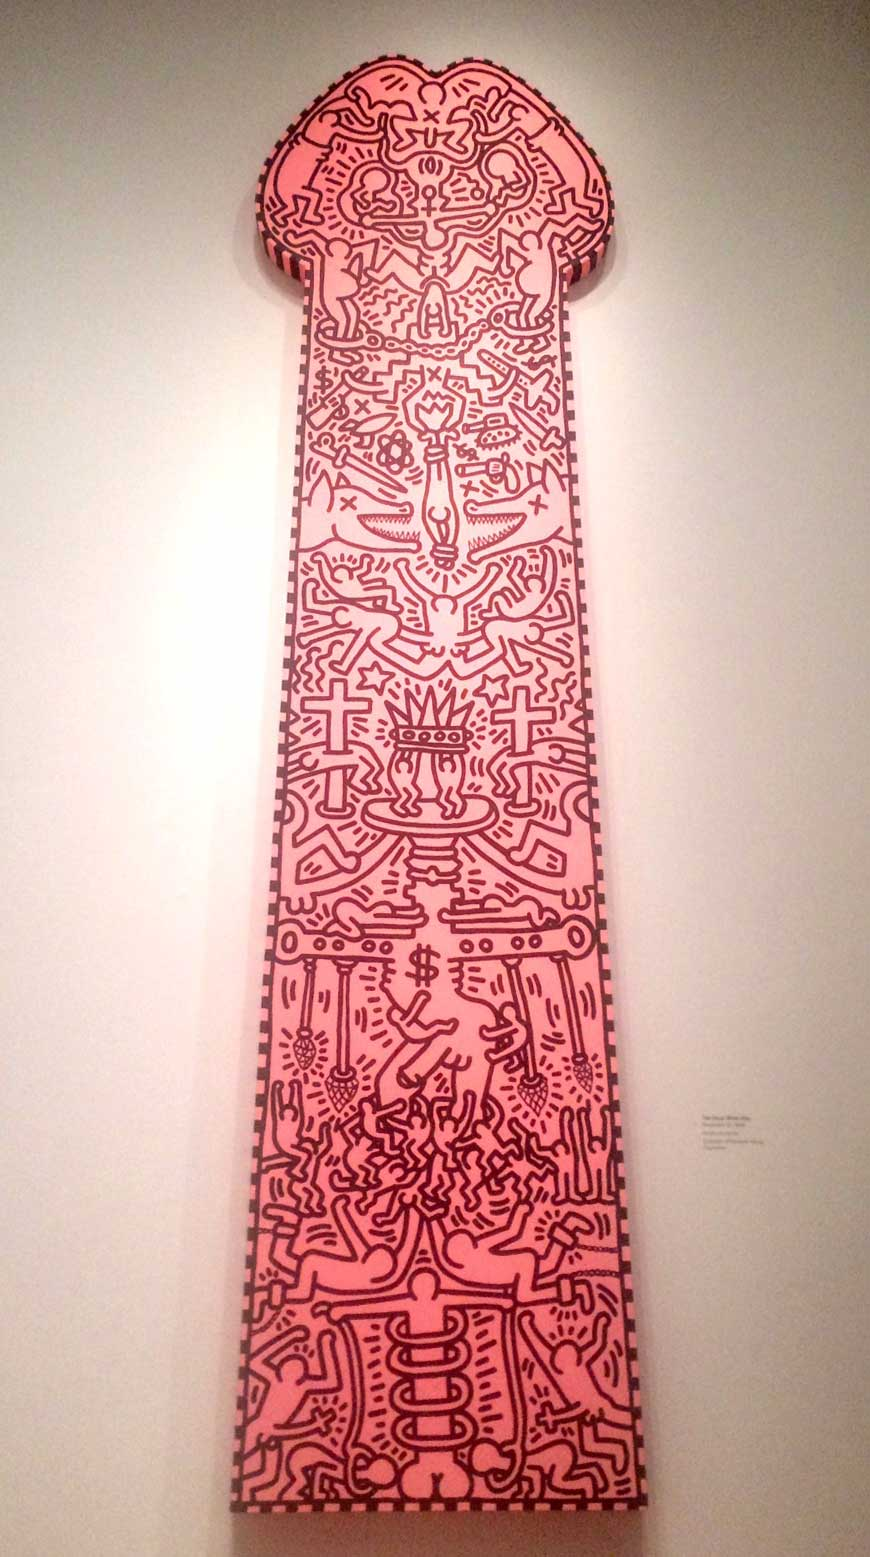 """Keith Haring, """"The Great White Way"""" (1988), acrylic on canvas, 168 x 45 in (click to enlarge)"""